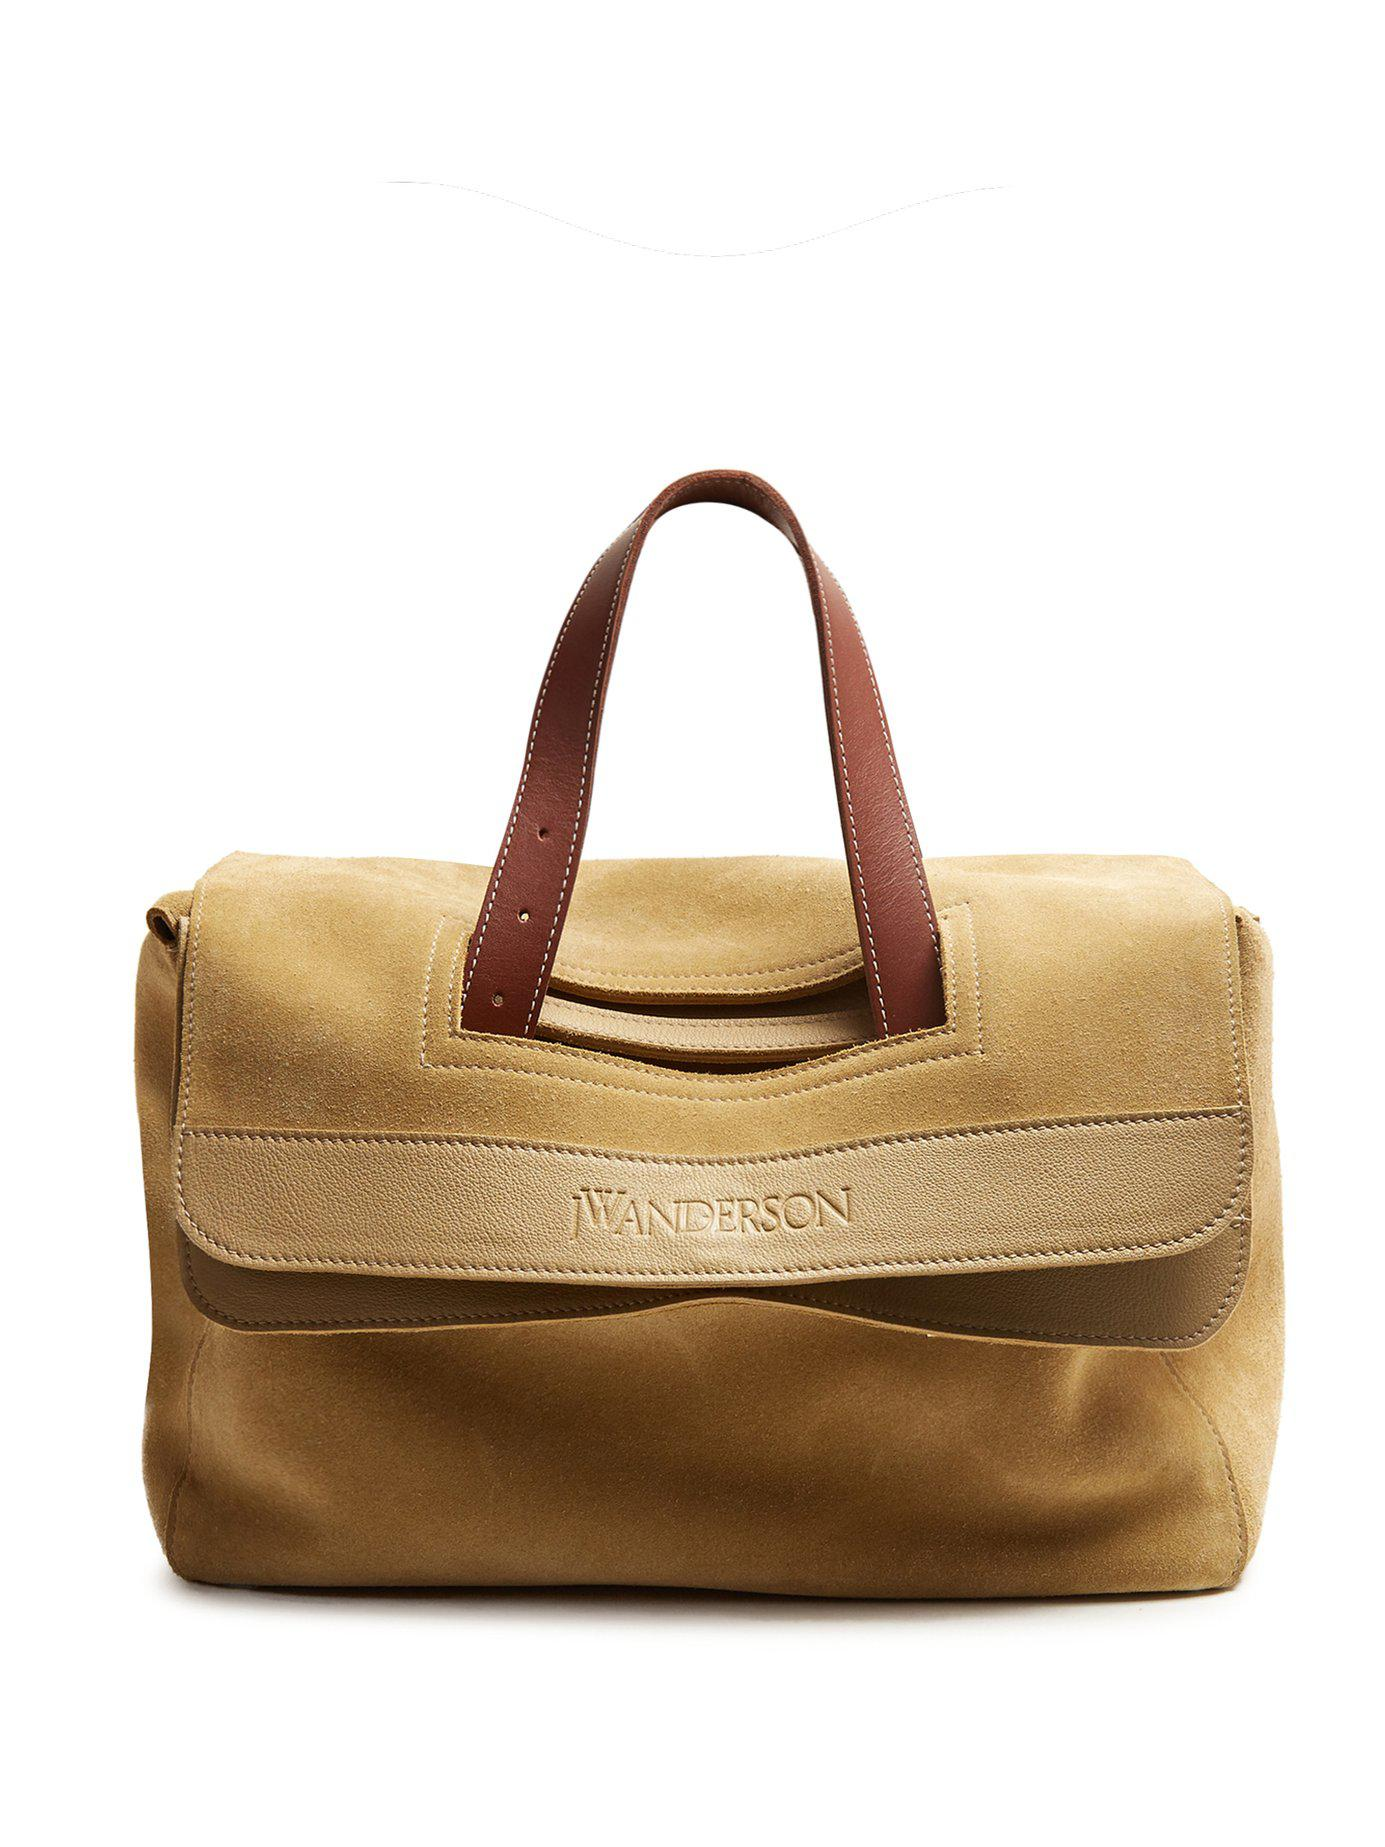 Lyst - JW Anderson Tool Leather-trimmed Suede Tote in Natural 060743e8151be